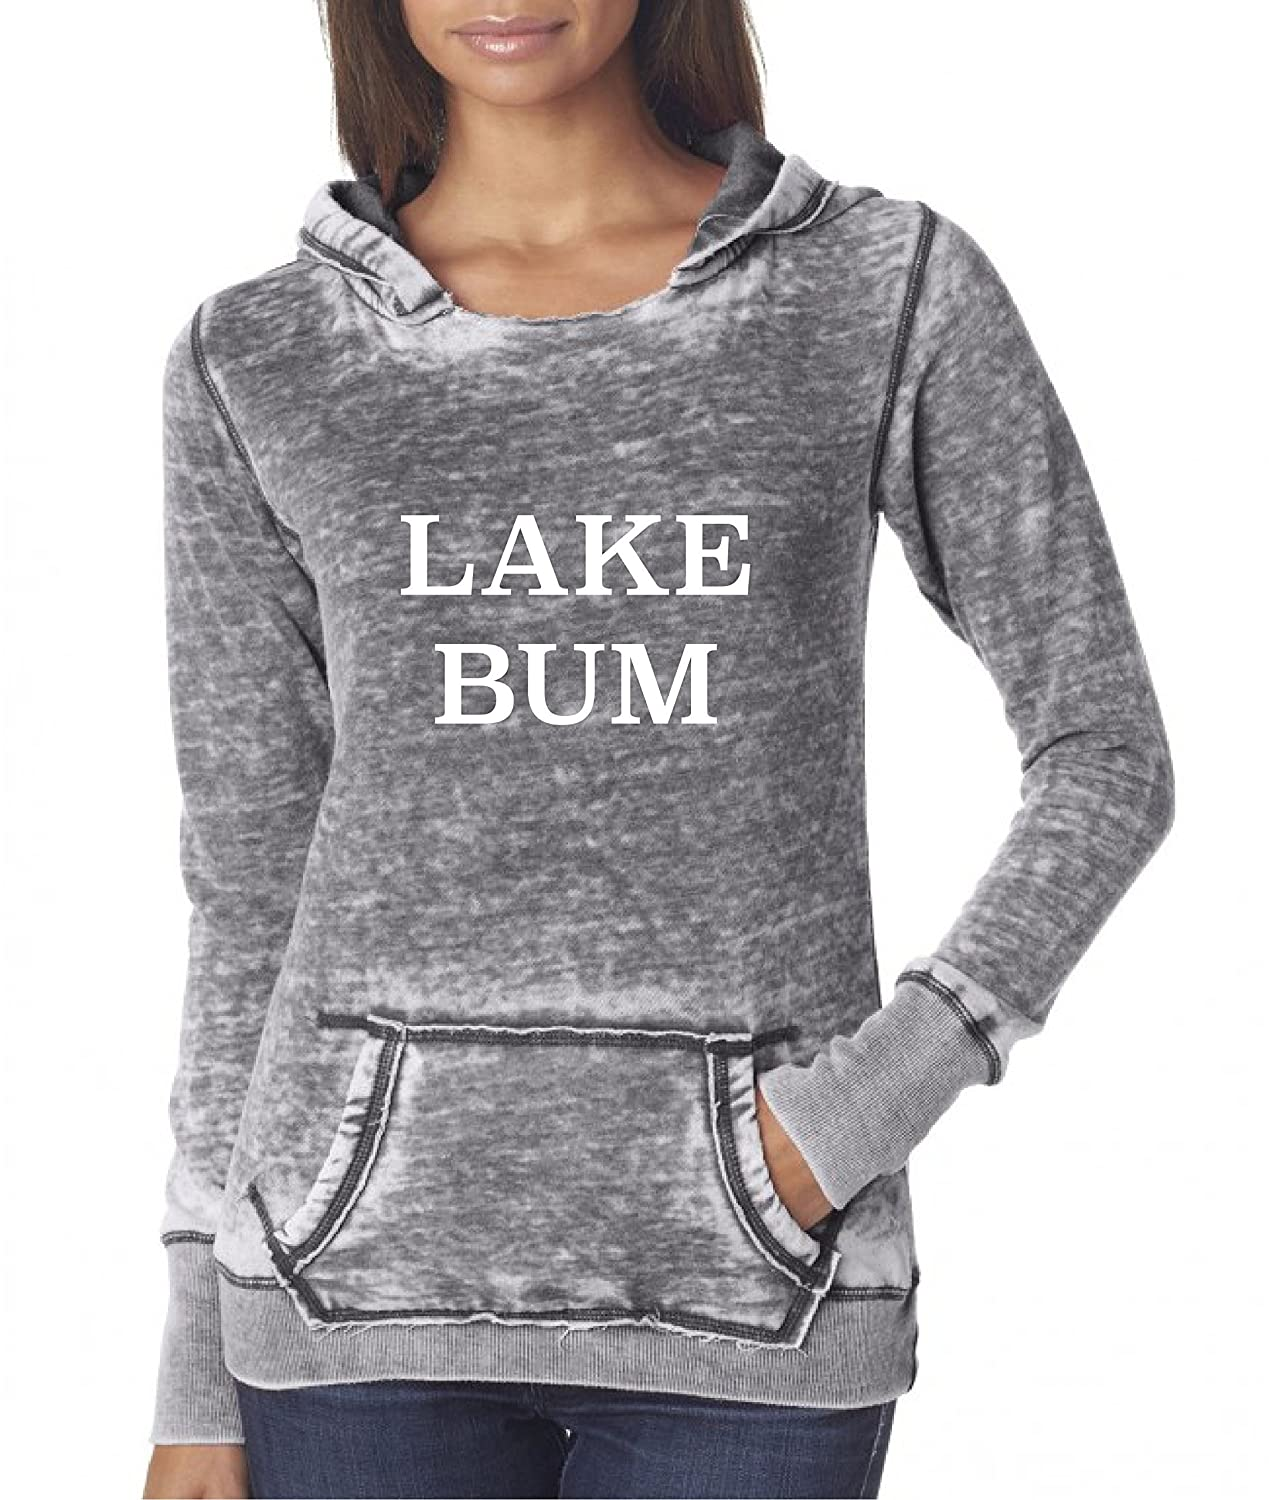 Lake Bum on acid washed vintage zen distressed hooded sweatshirt pullover